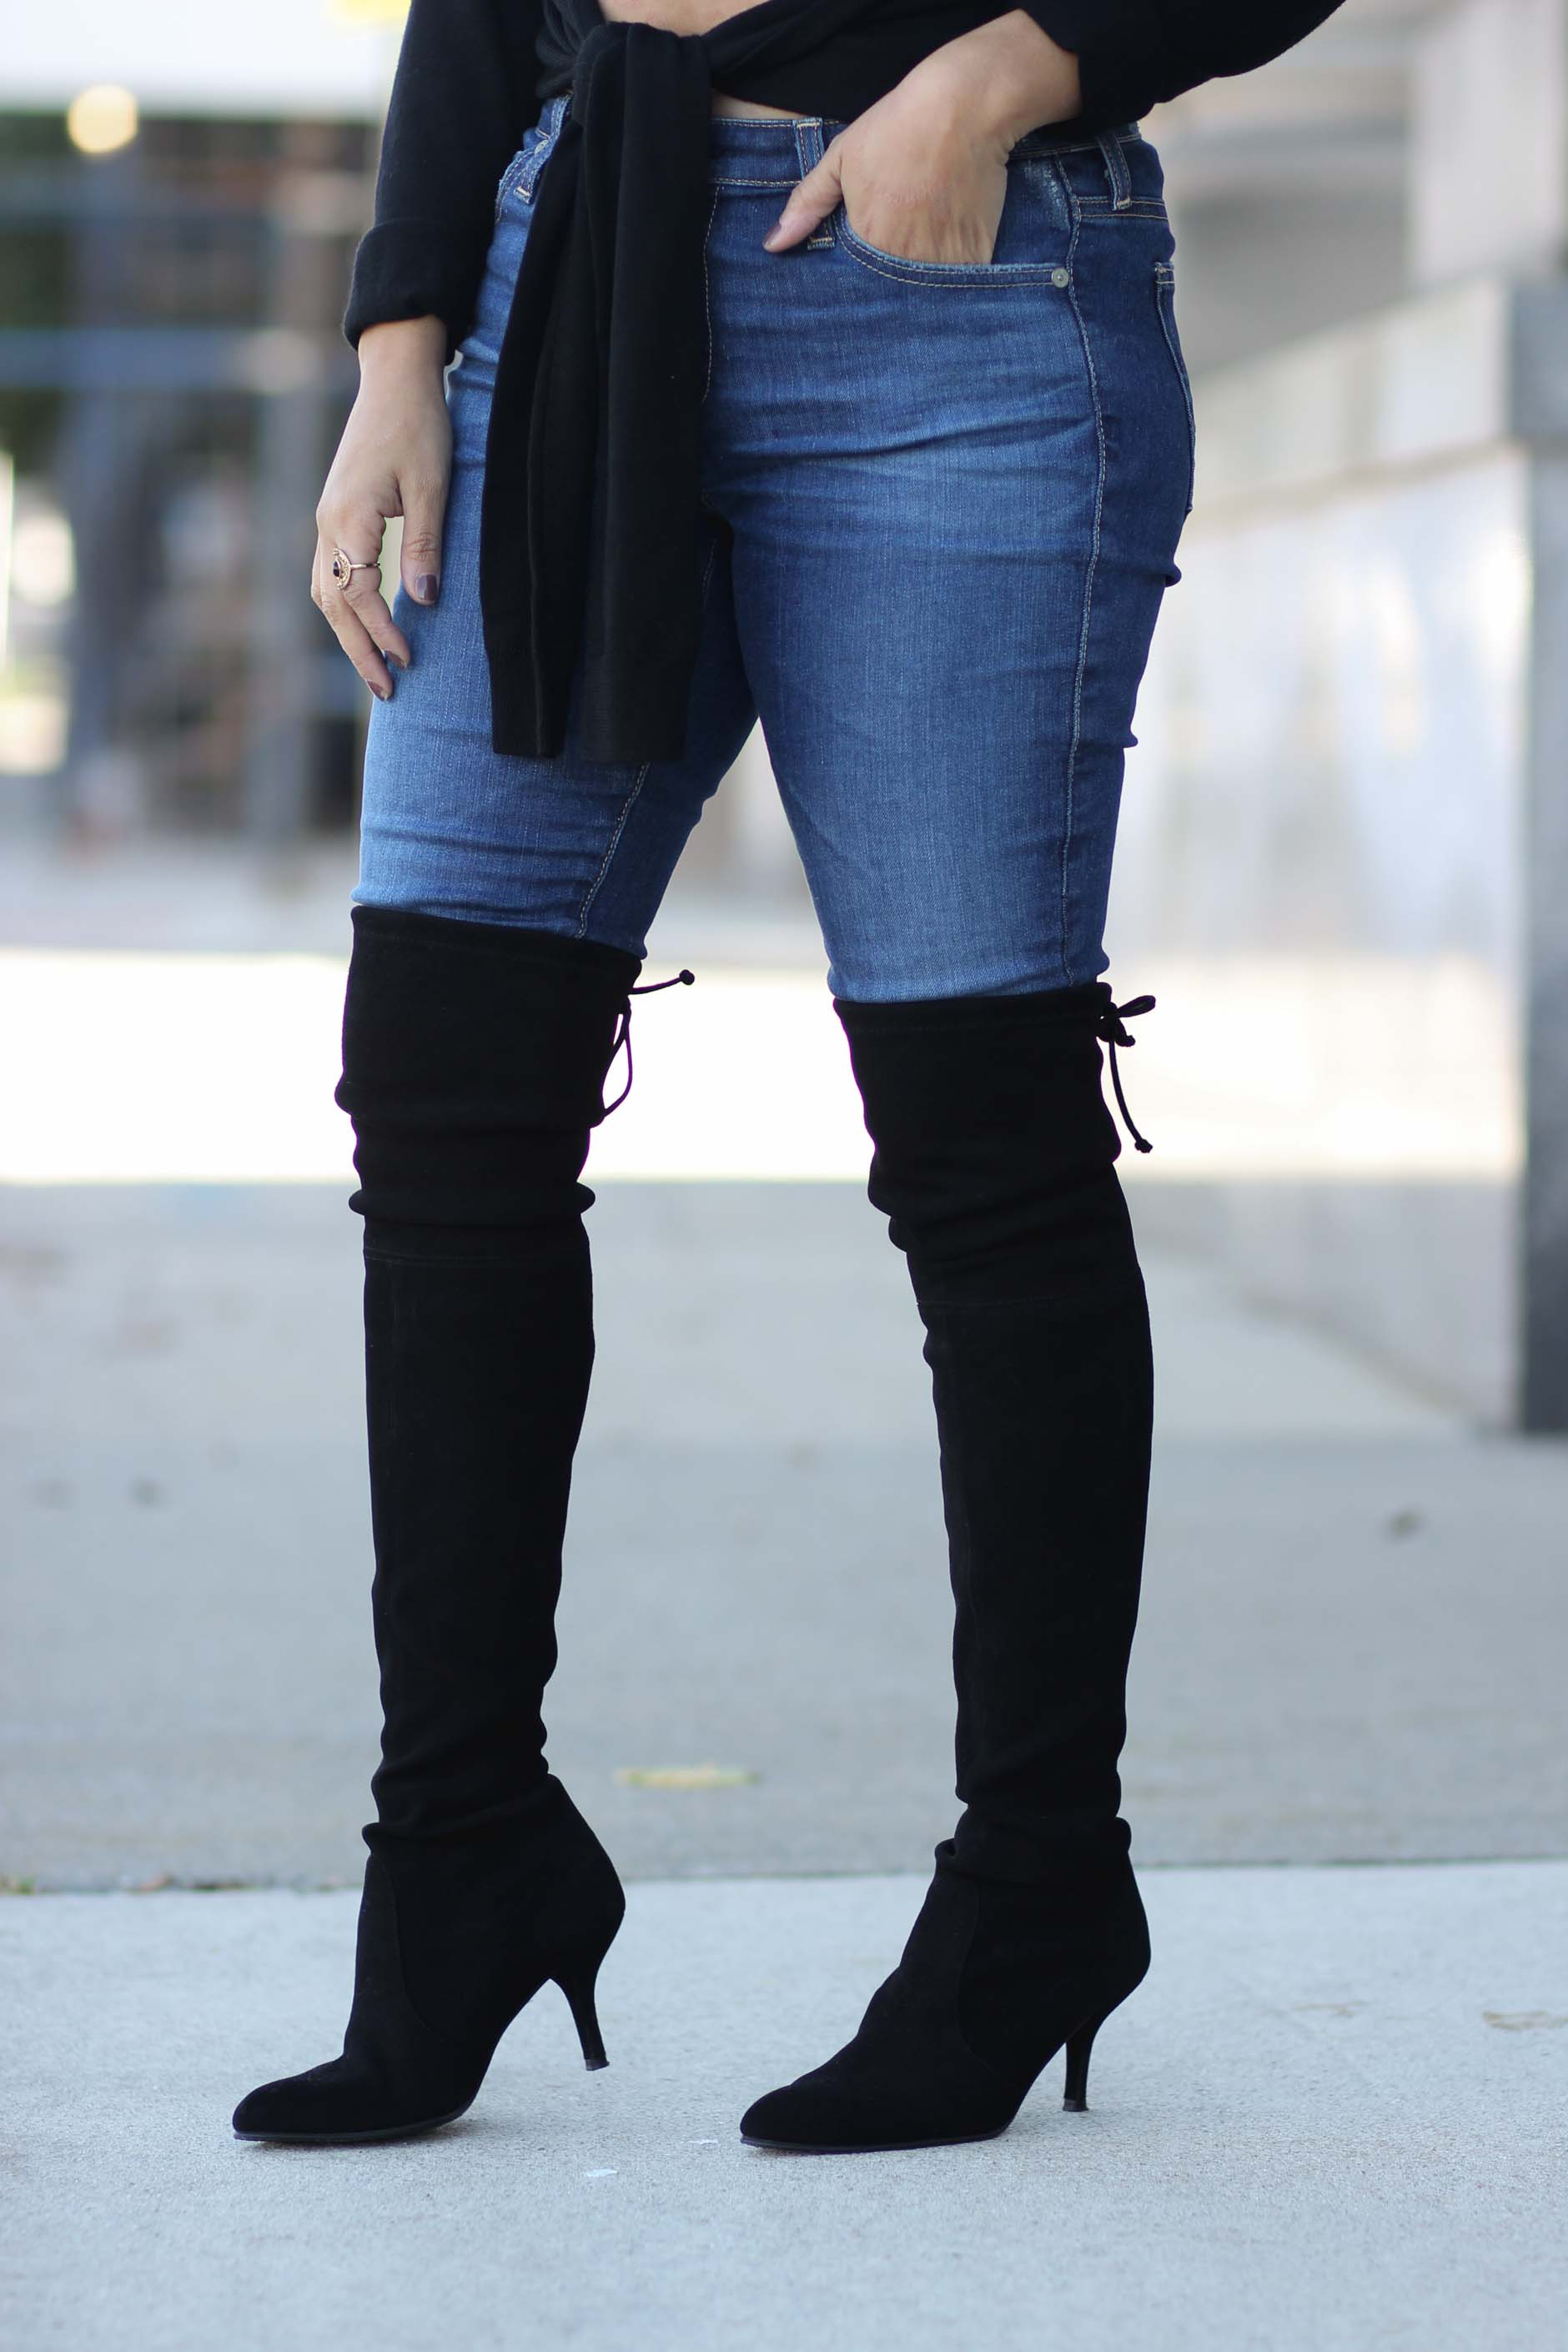 lifestyle blogger naty michele wearing ag jeans and stuart weitzman otk boots